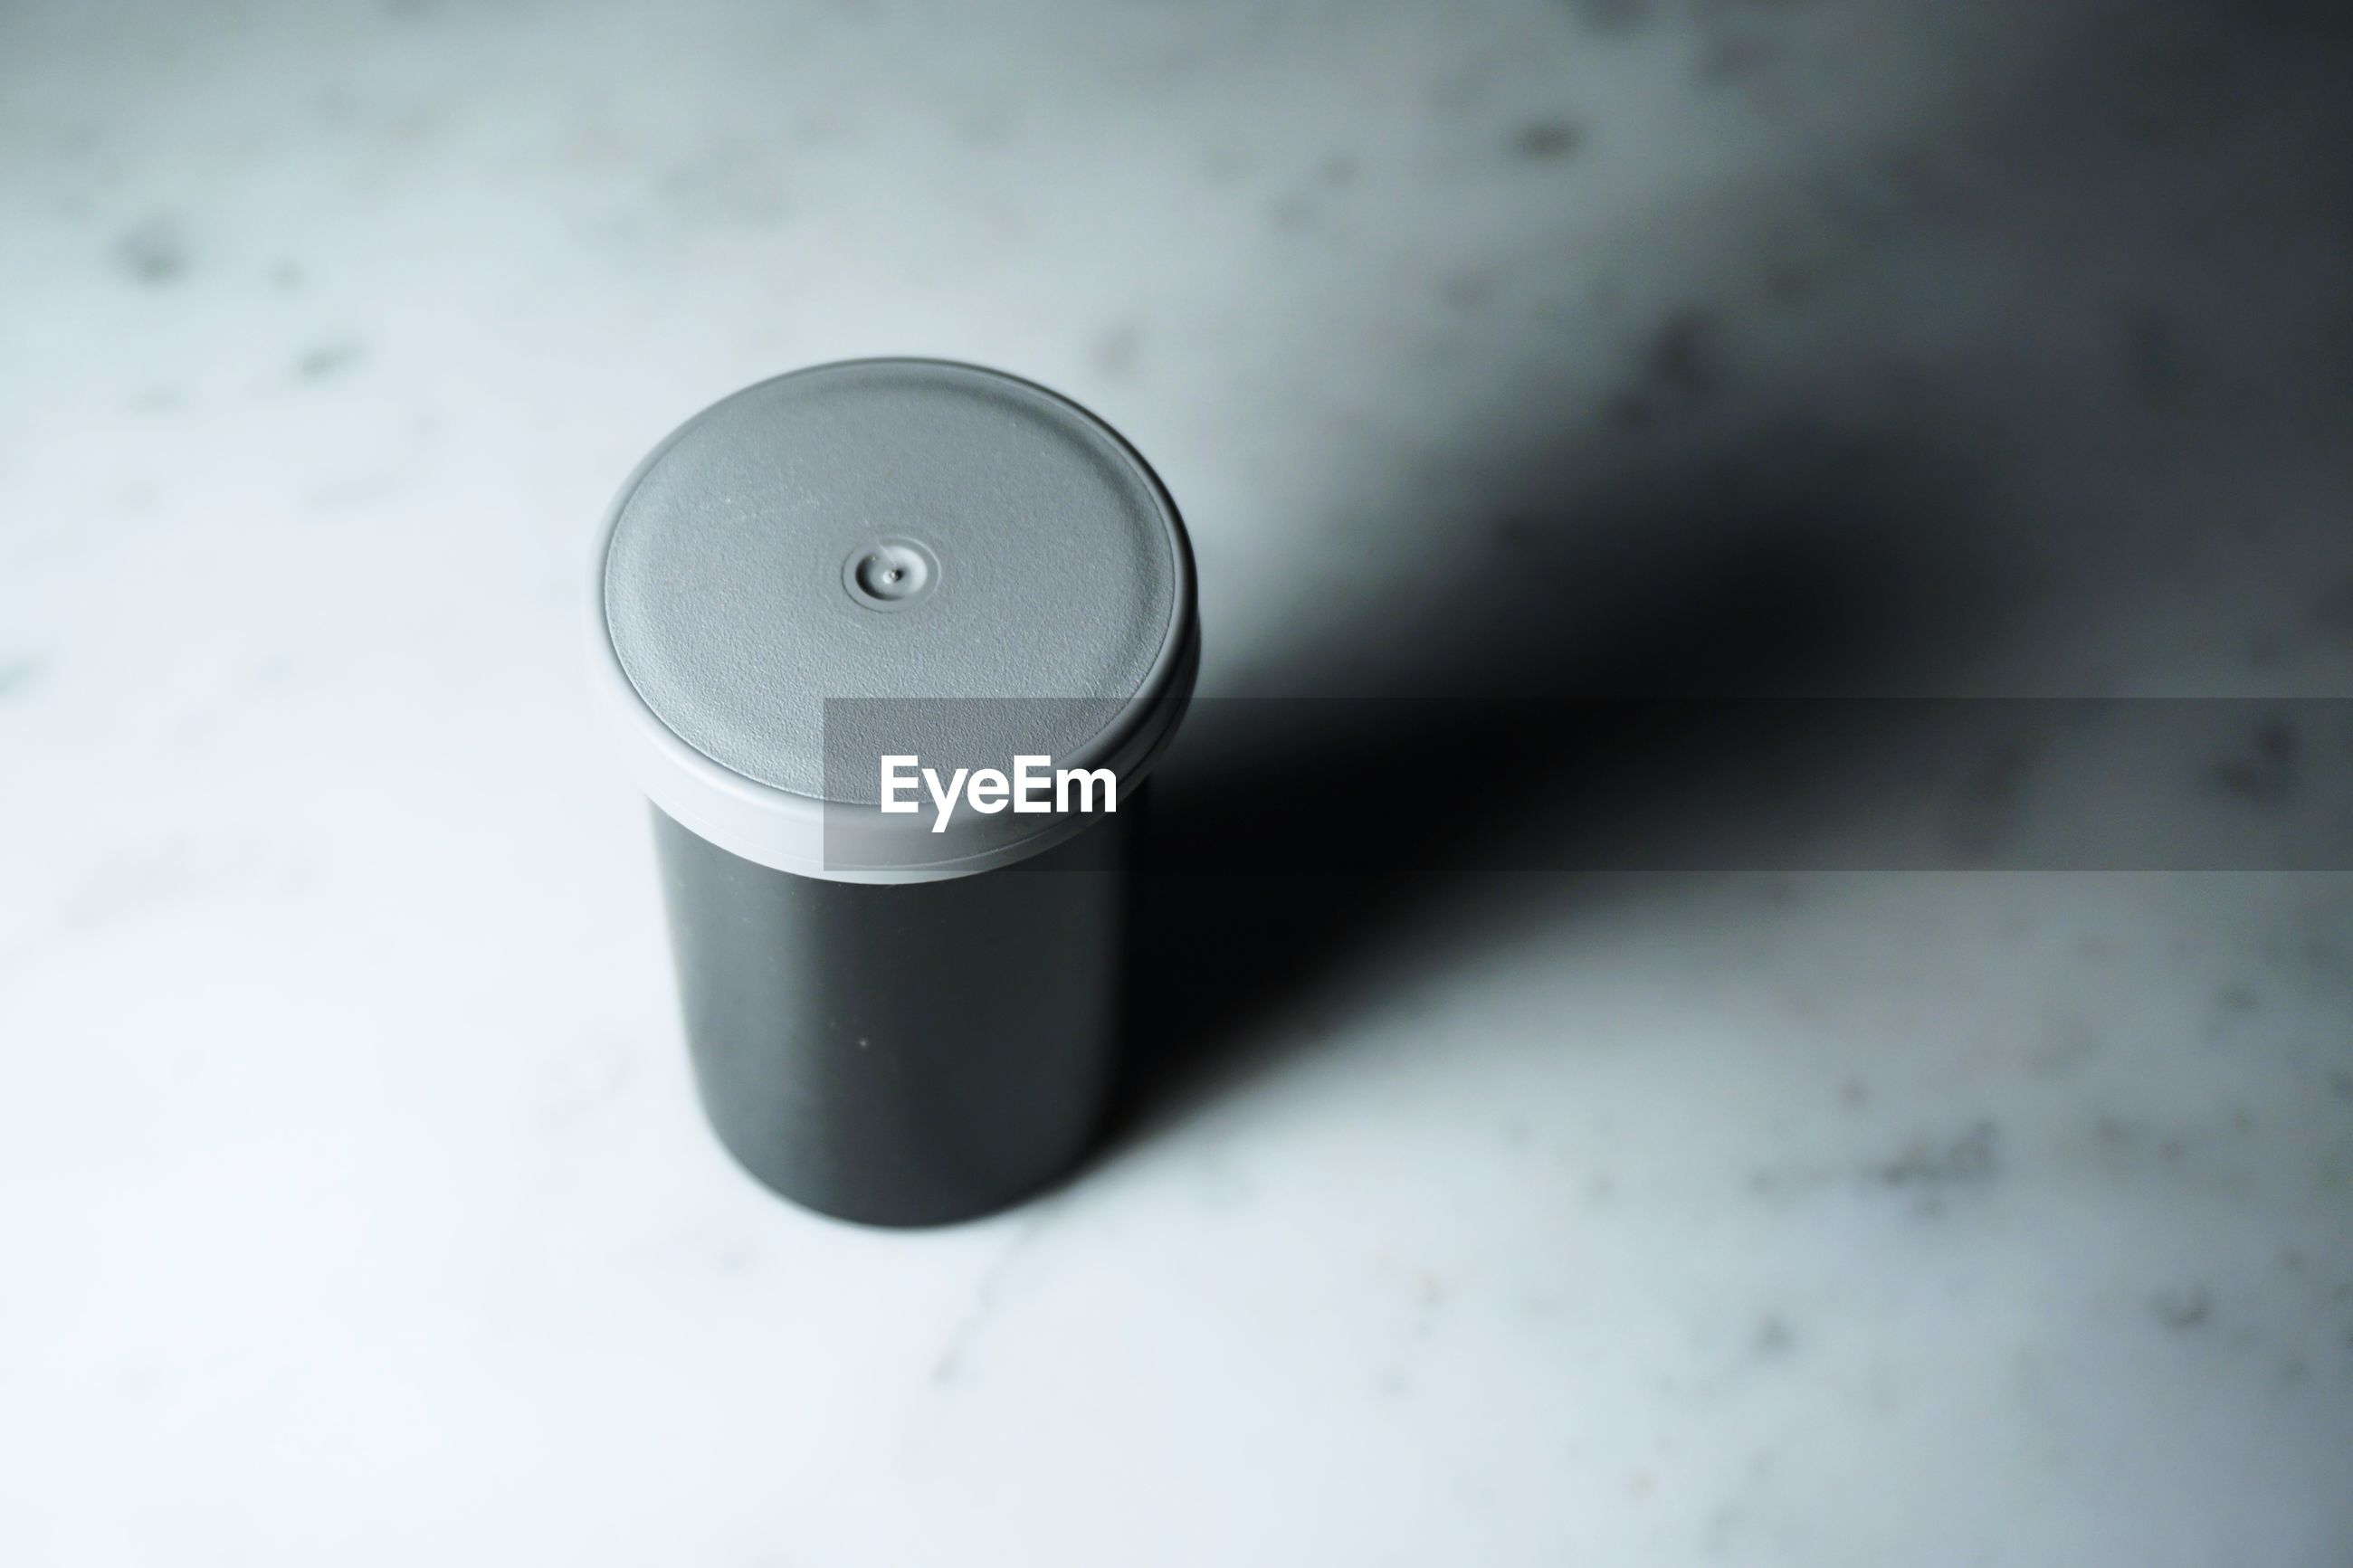 High angle view of black container on table